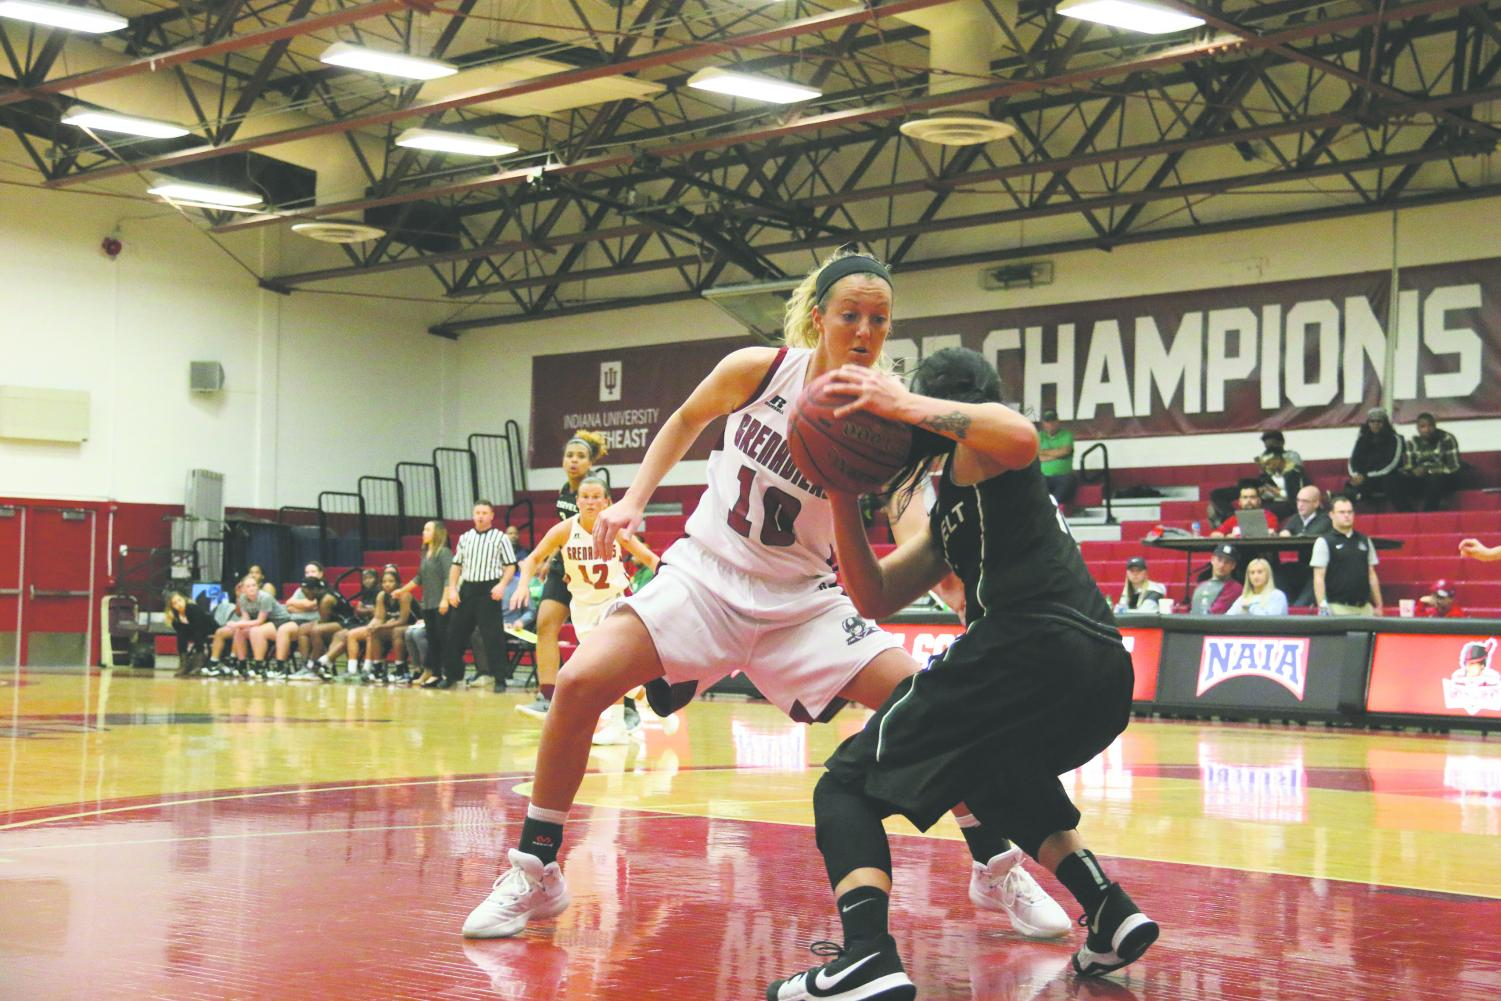 Senior forward Josie Hockman applies pressure on a press in last season's 68-46 loss to Roosevelt University. Hockman finished the game with 10 points and four rebounds.